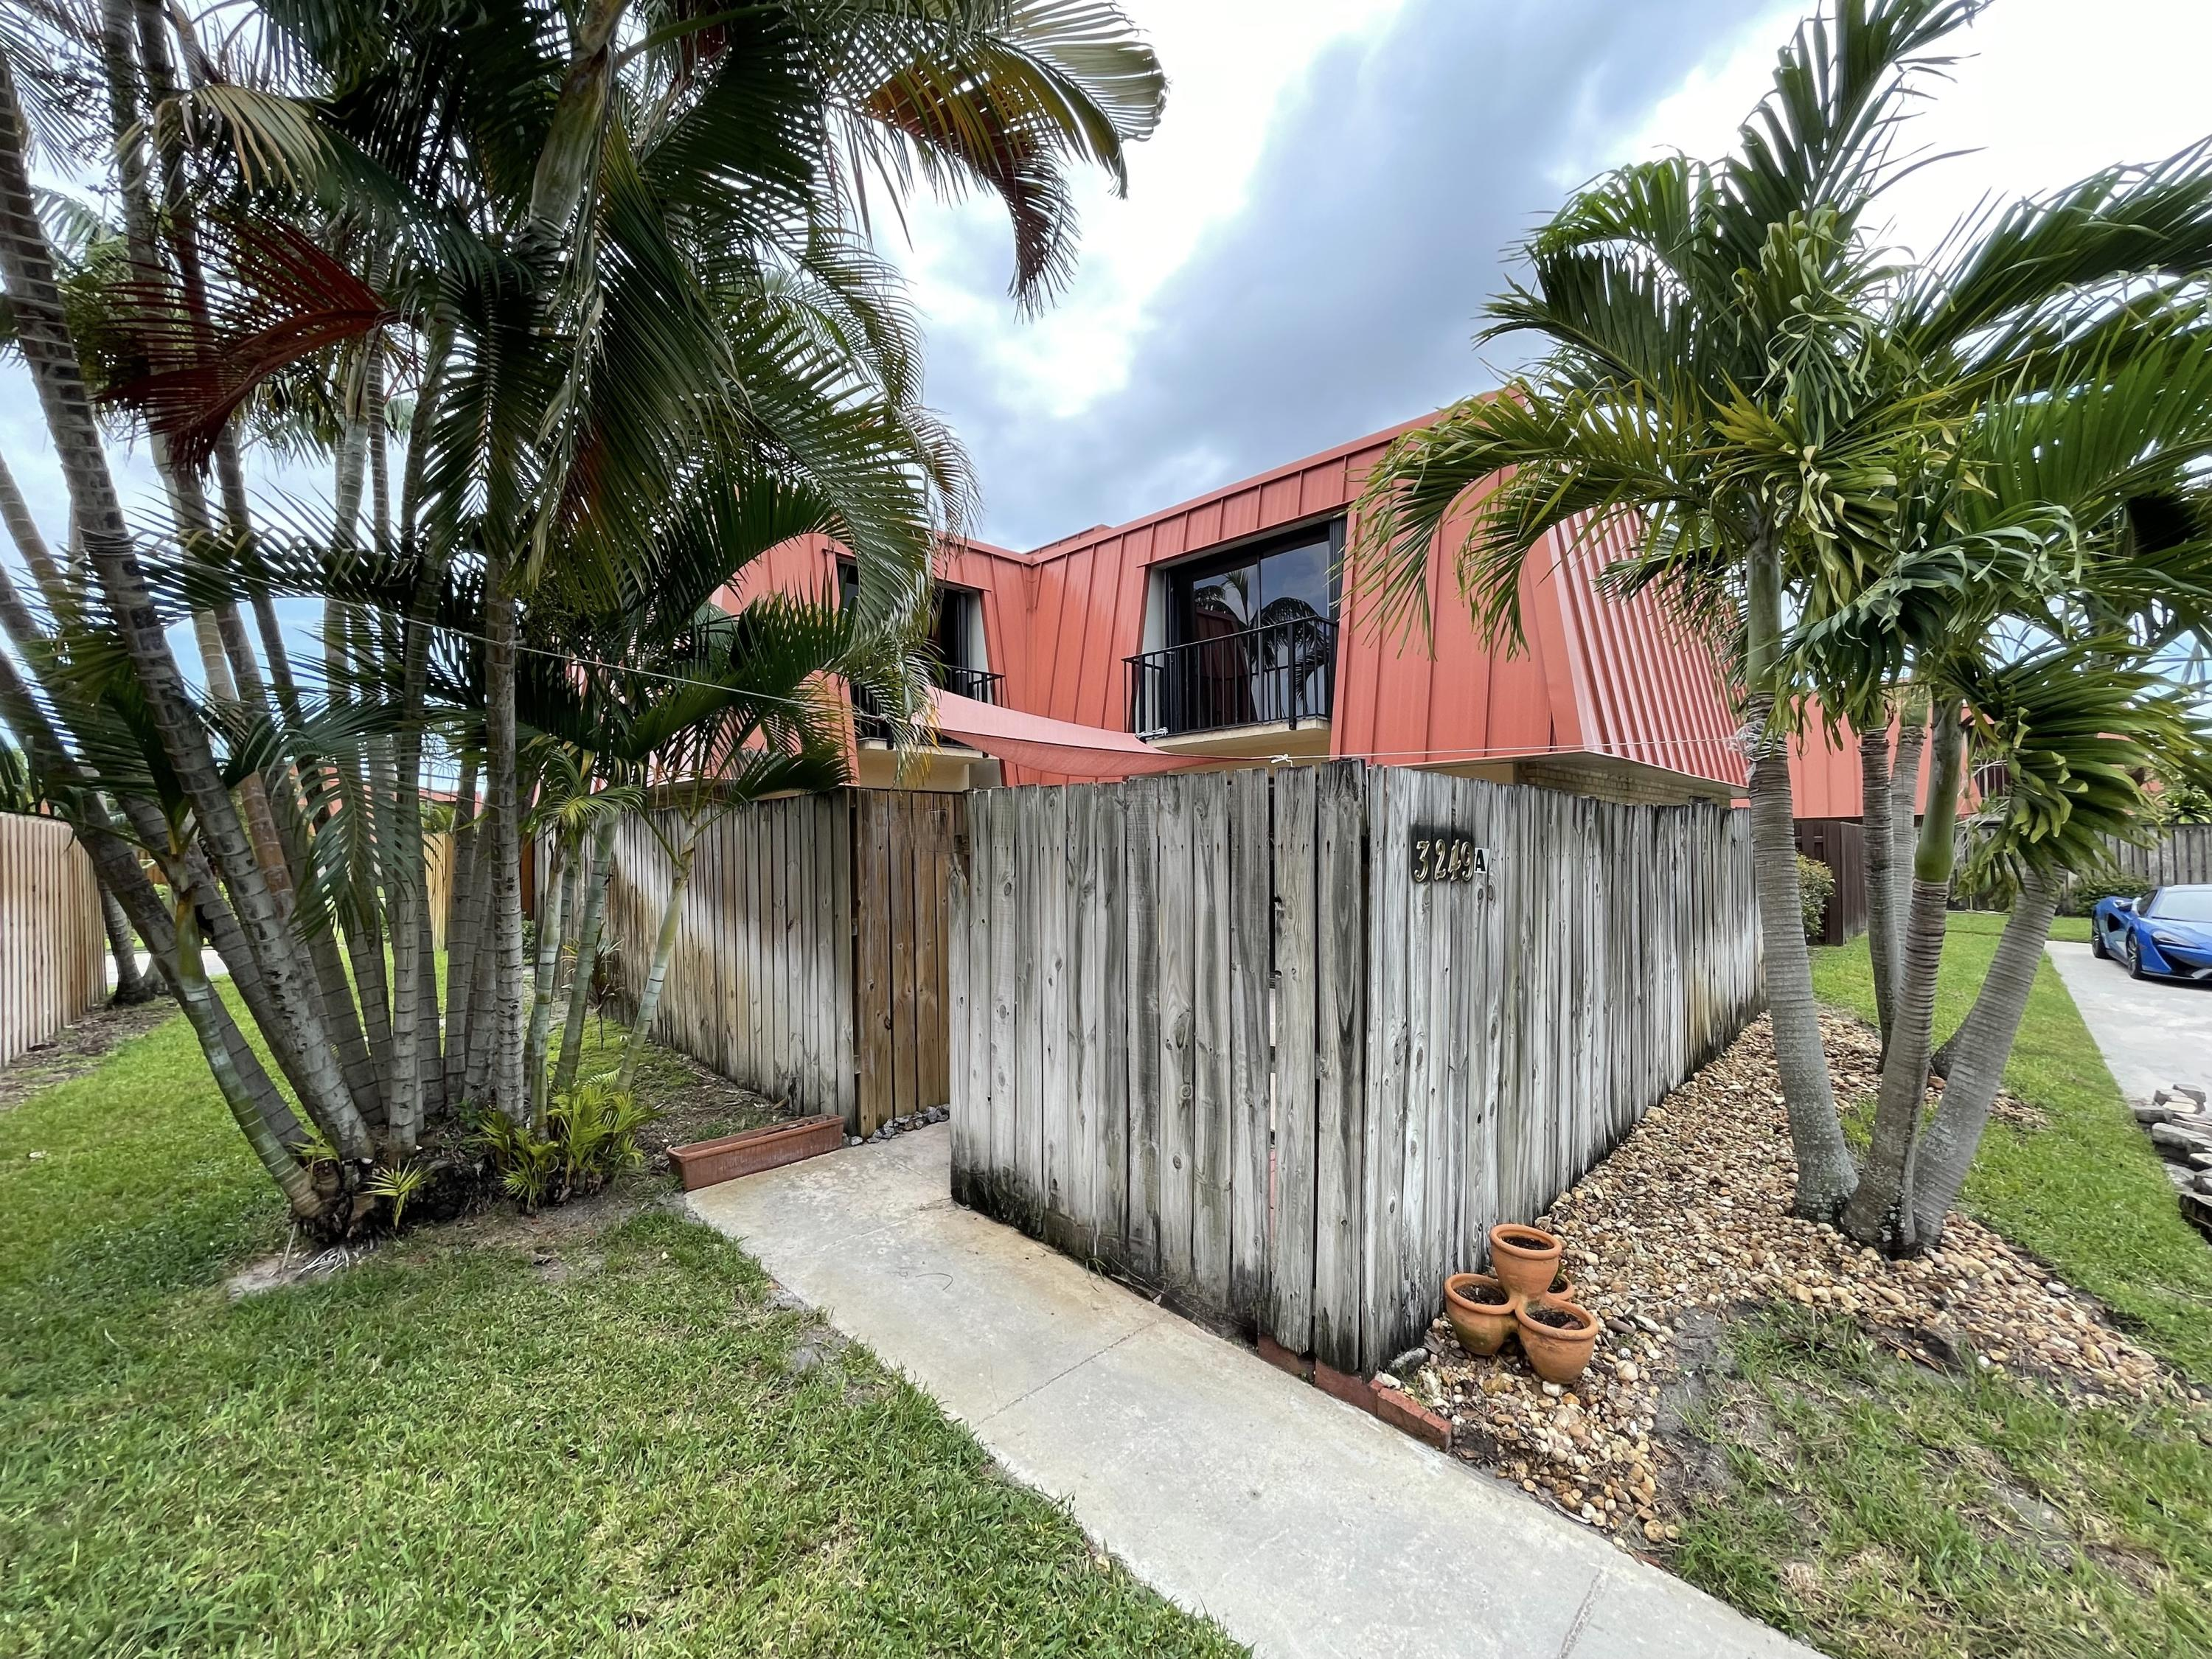 Terrific 2 Bedroom 2 Bath Townhouse in the heart of Palm Beach Gardens. Large Patio to barbecue and entertain. Accordion Hurricane shutters. Close to all the shopping and restaurants along PGA Blvd. 15 Minutes to the beautiful beaches and the Airport